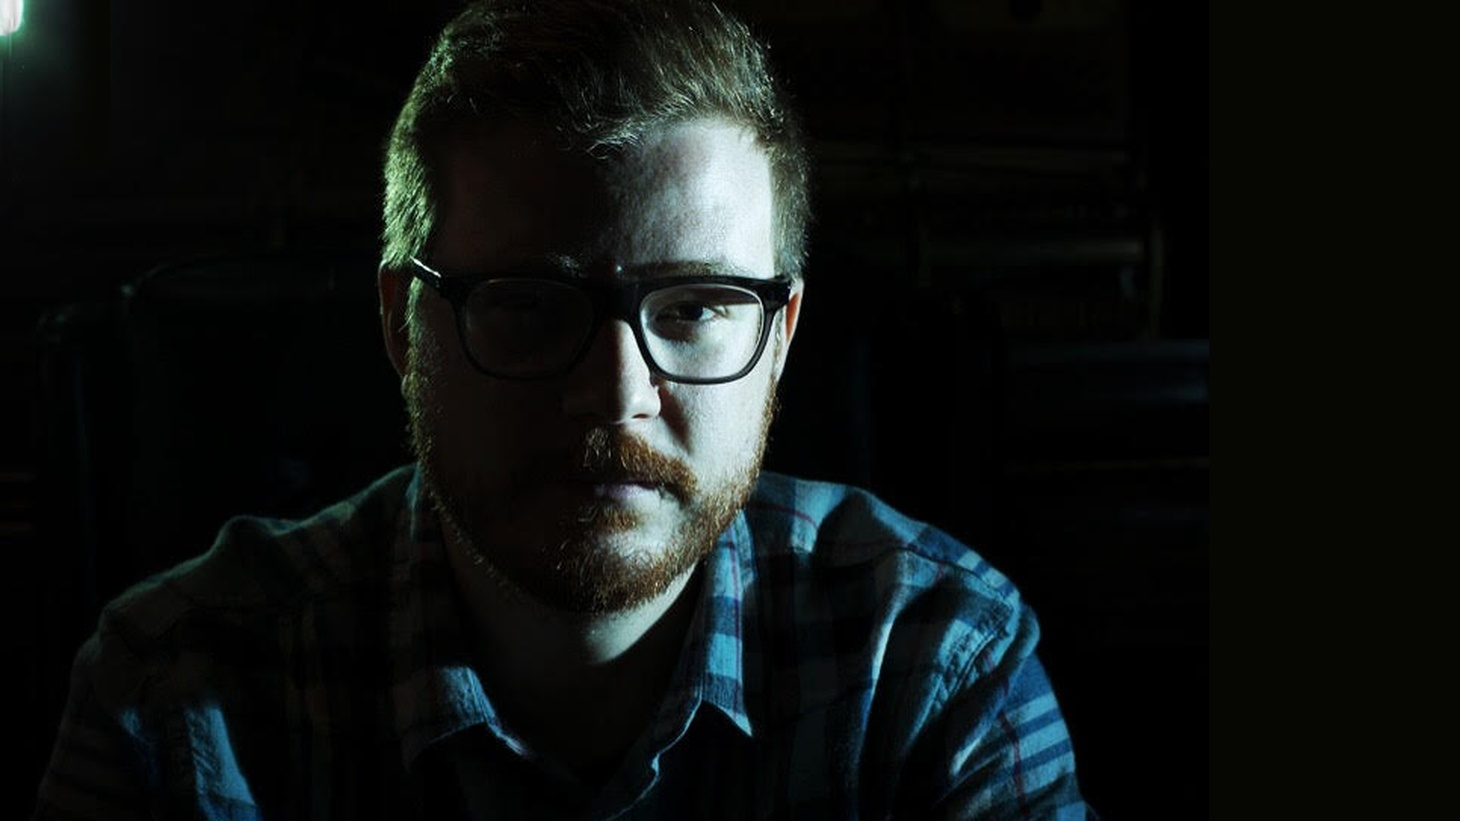 Benji Swafford is an emerging singer-songwriter based in Austin. His debut EP is sparse and heartfelt with hints of his philosophical studies.